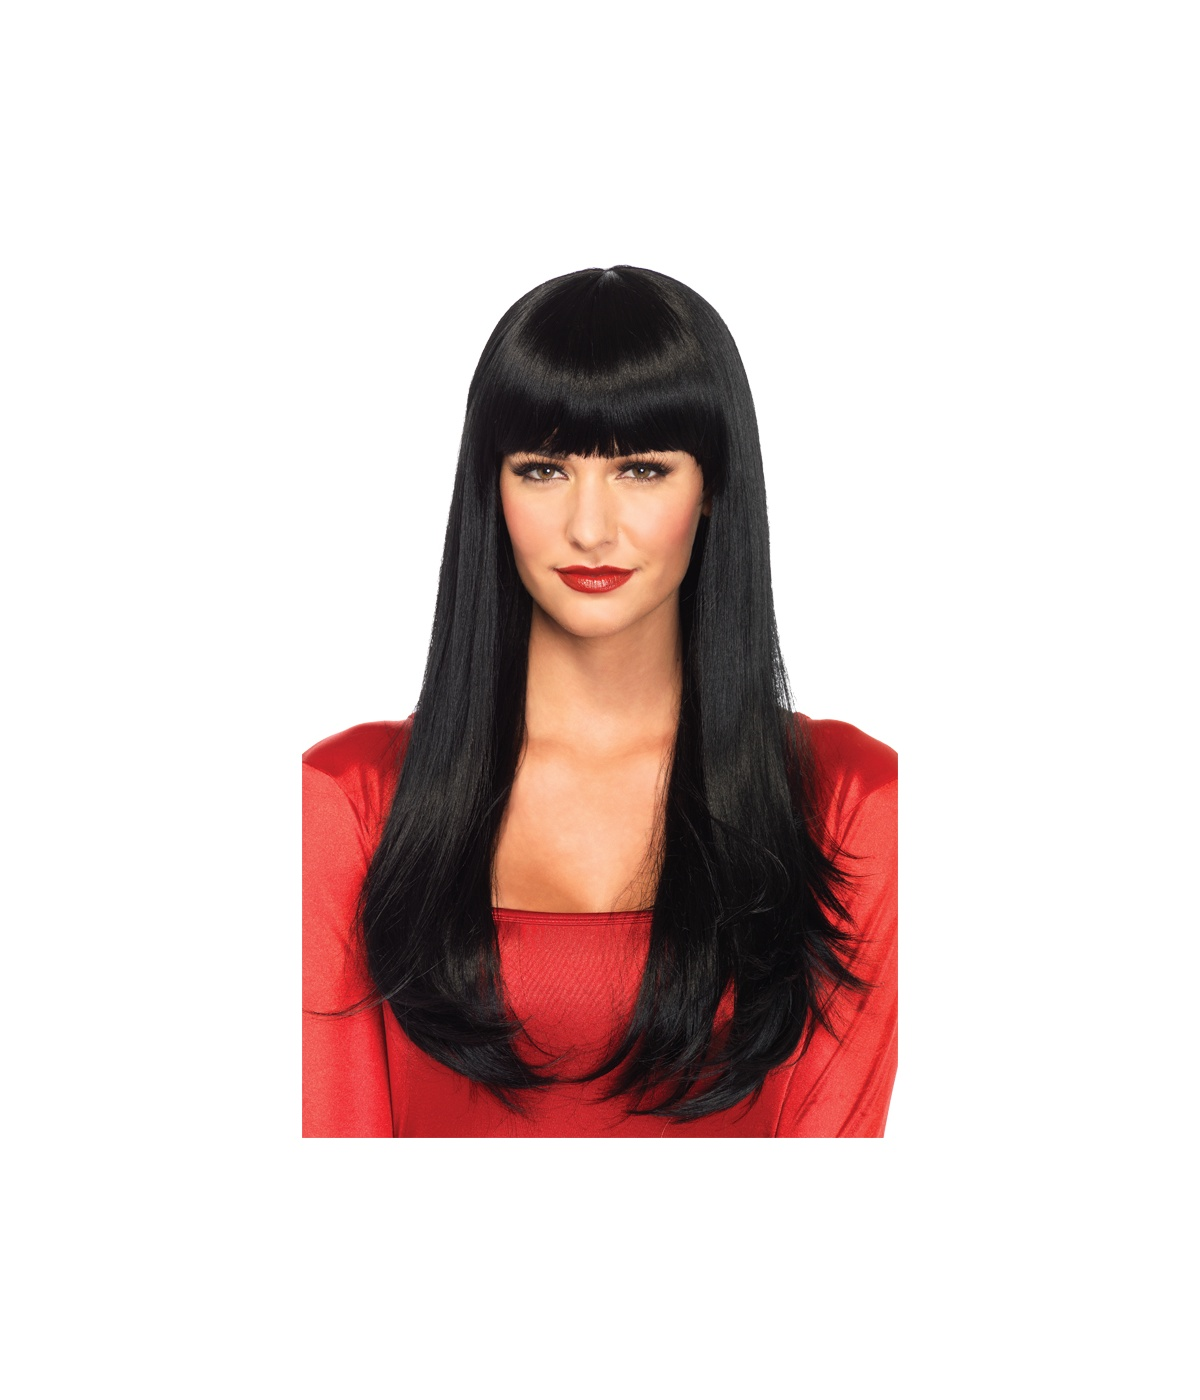 Straight Hair Cutting Video Long Straight Bangs Black Wig Wigs